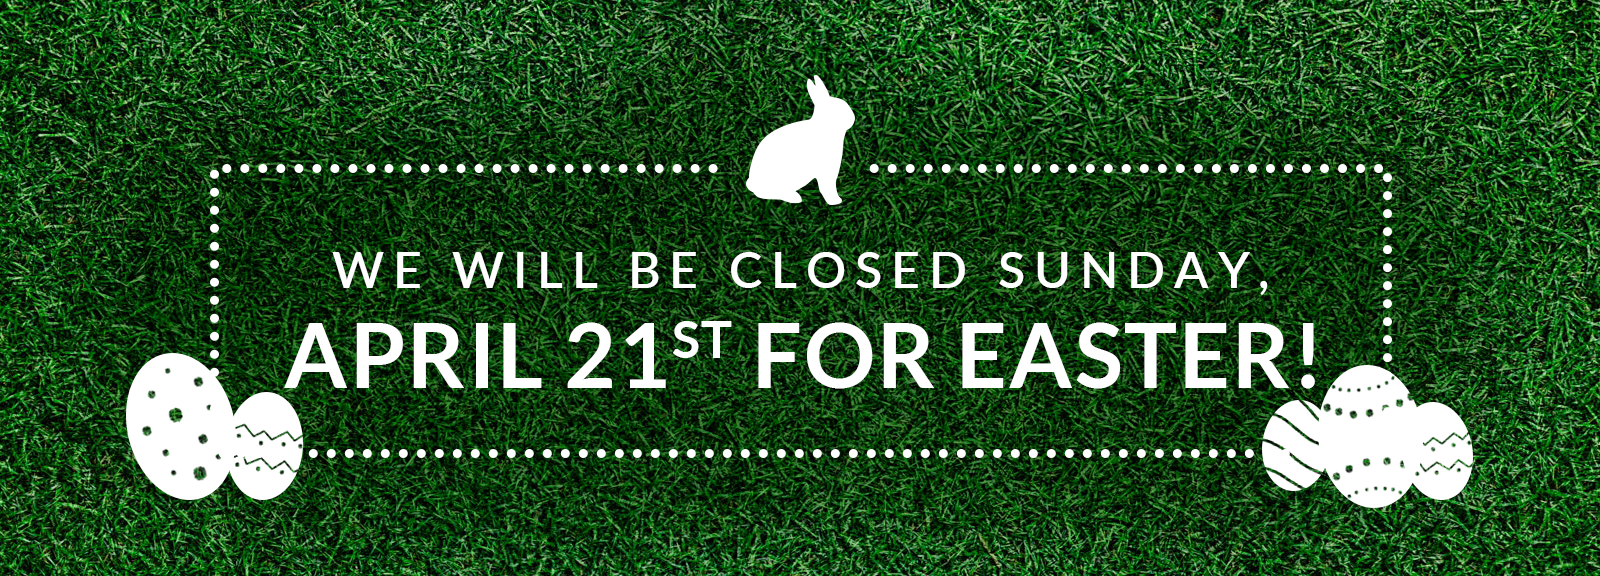 MoundView__Closed4Easter_HompageBanner_April19.png